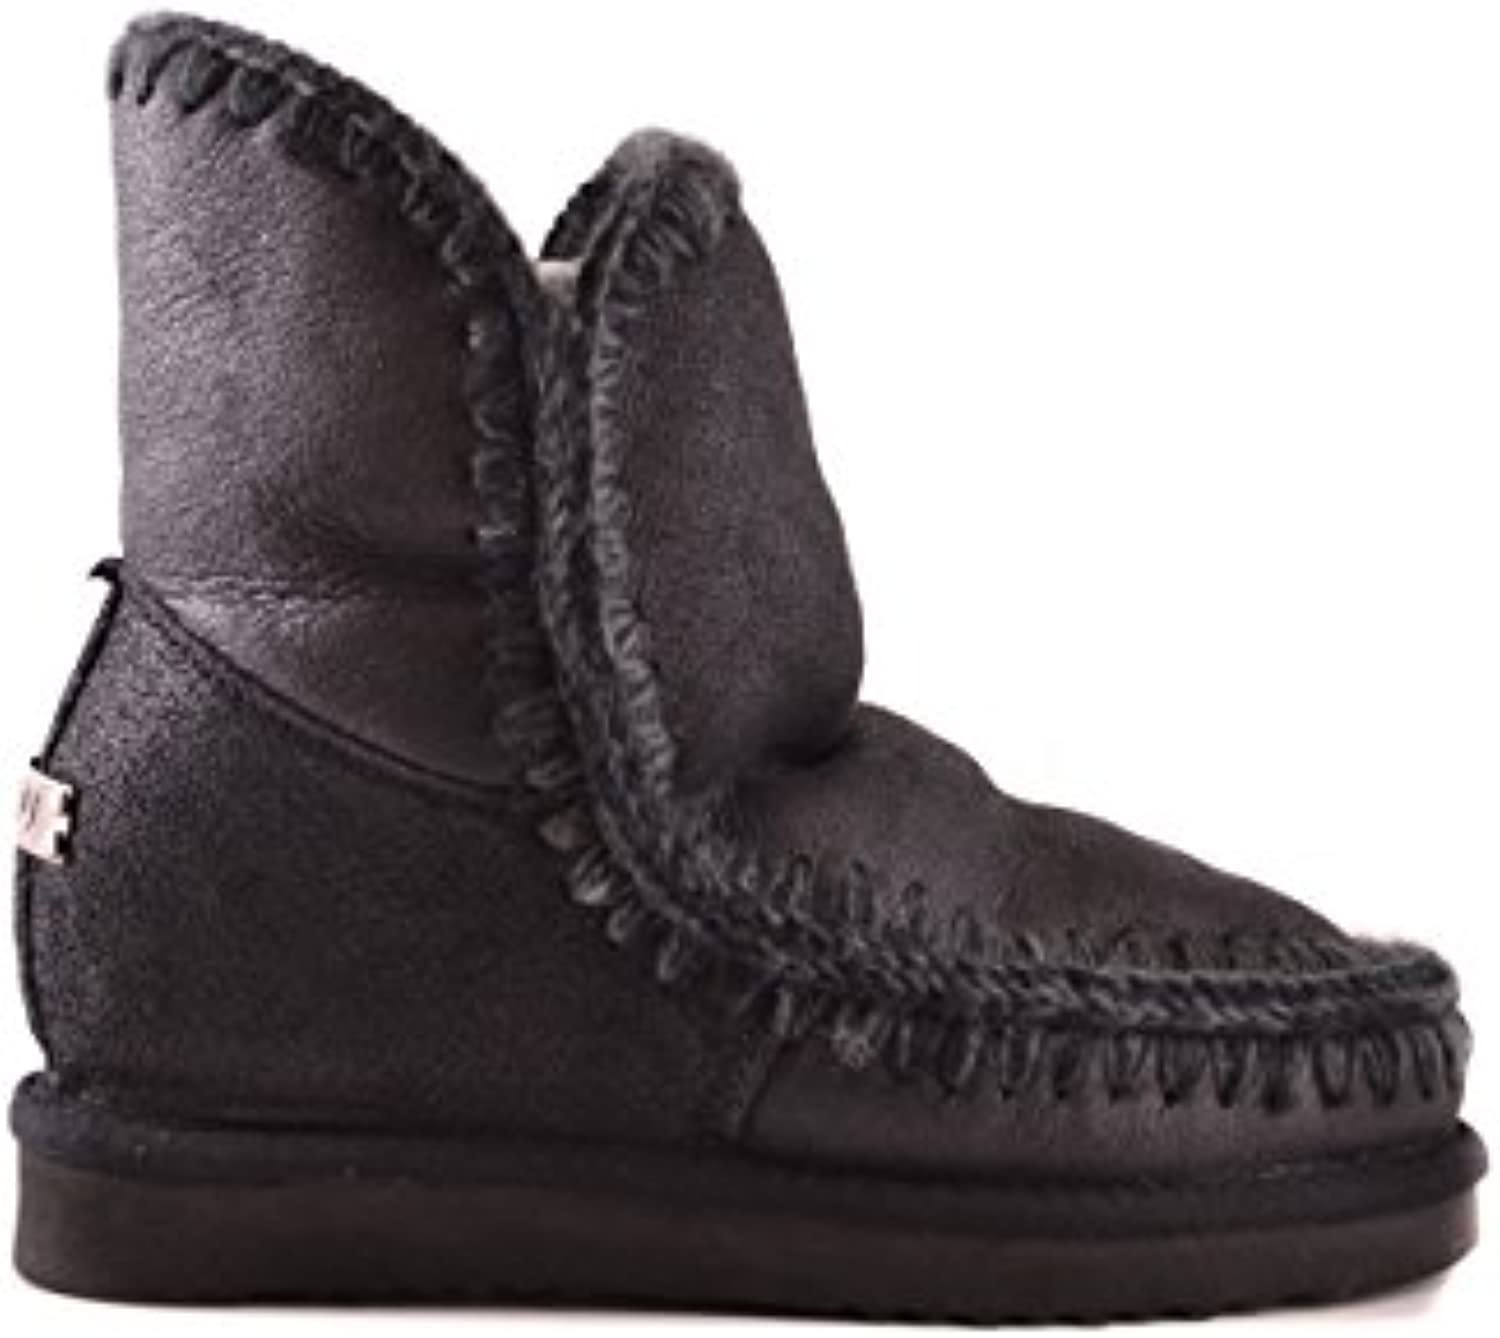 Mou Chaussures Chaussures Mou cad05e